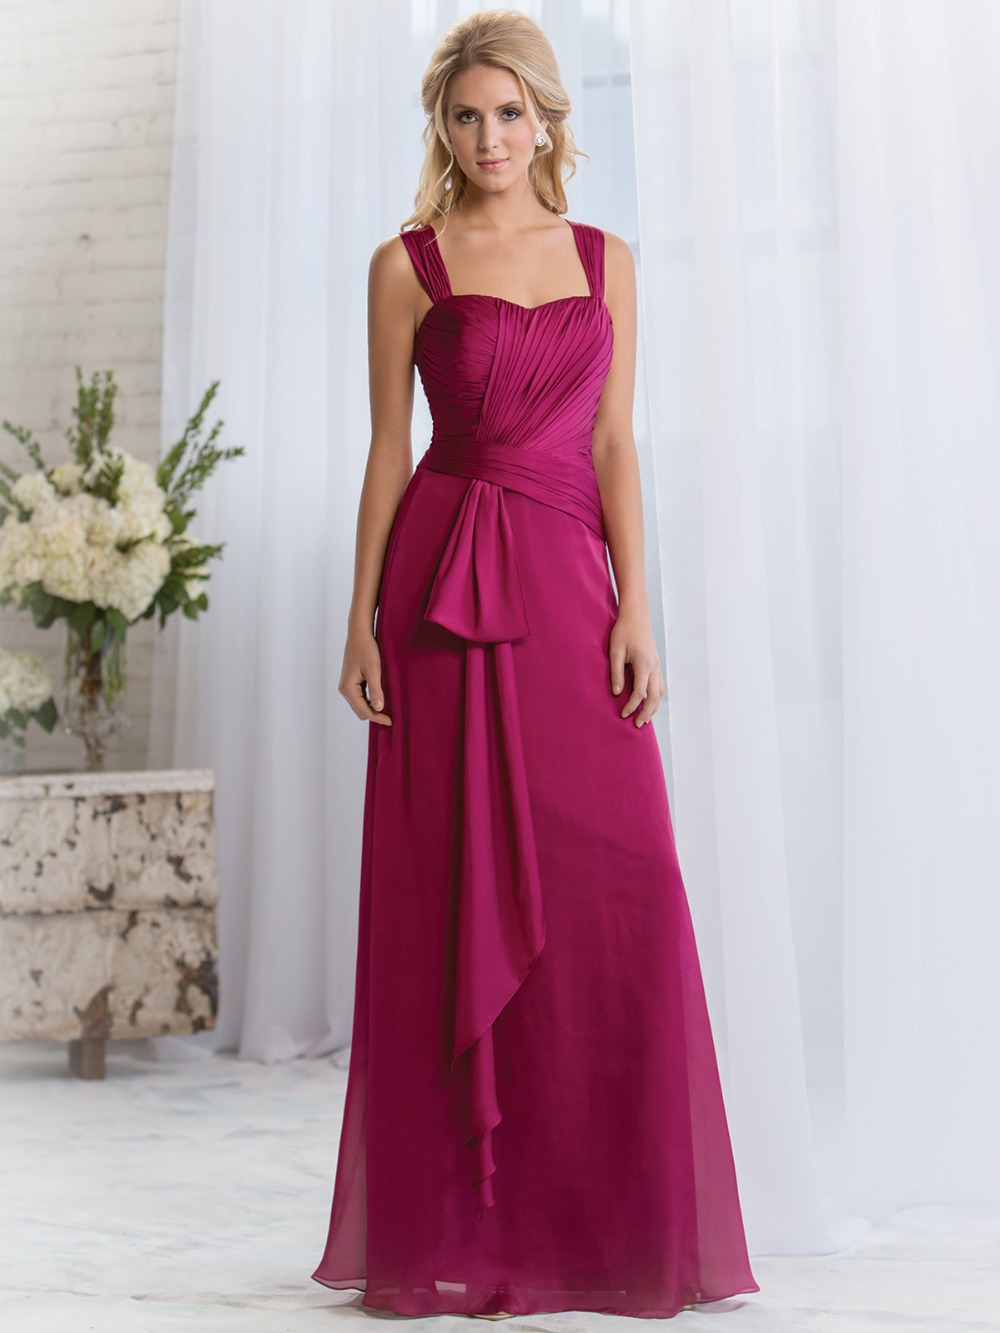 Compare Prices on Pastel Bridesmaid Dresses- Online